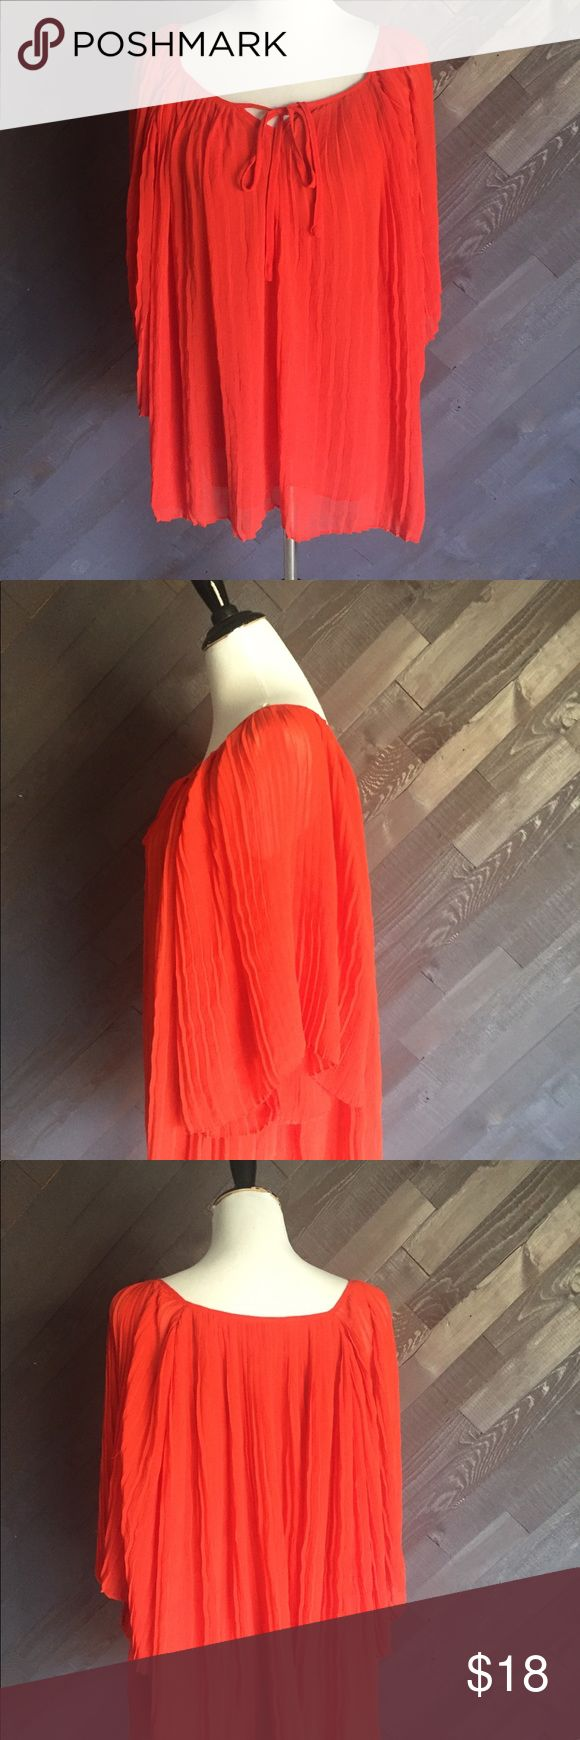 Forever 21 Red Pleated Blouse 🌹🌹🌹 Forever 21 Red pleated peasant style blouse in good condition has a small rip in the lining but it's not seen when you are wearing it, see pic. Measures 27 Long. Forever 21 Tops Blouses